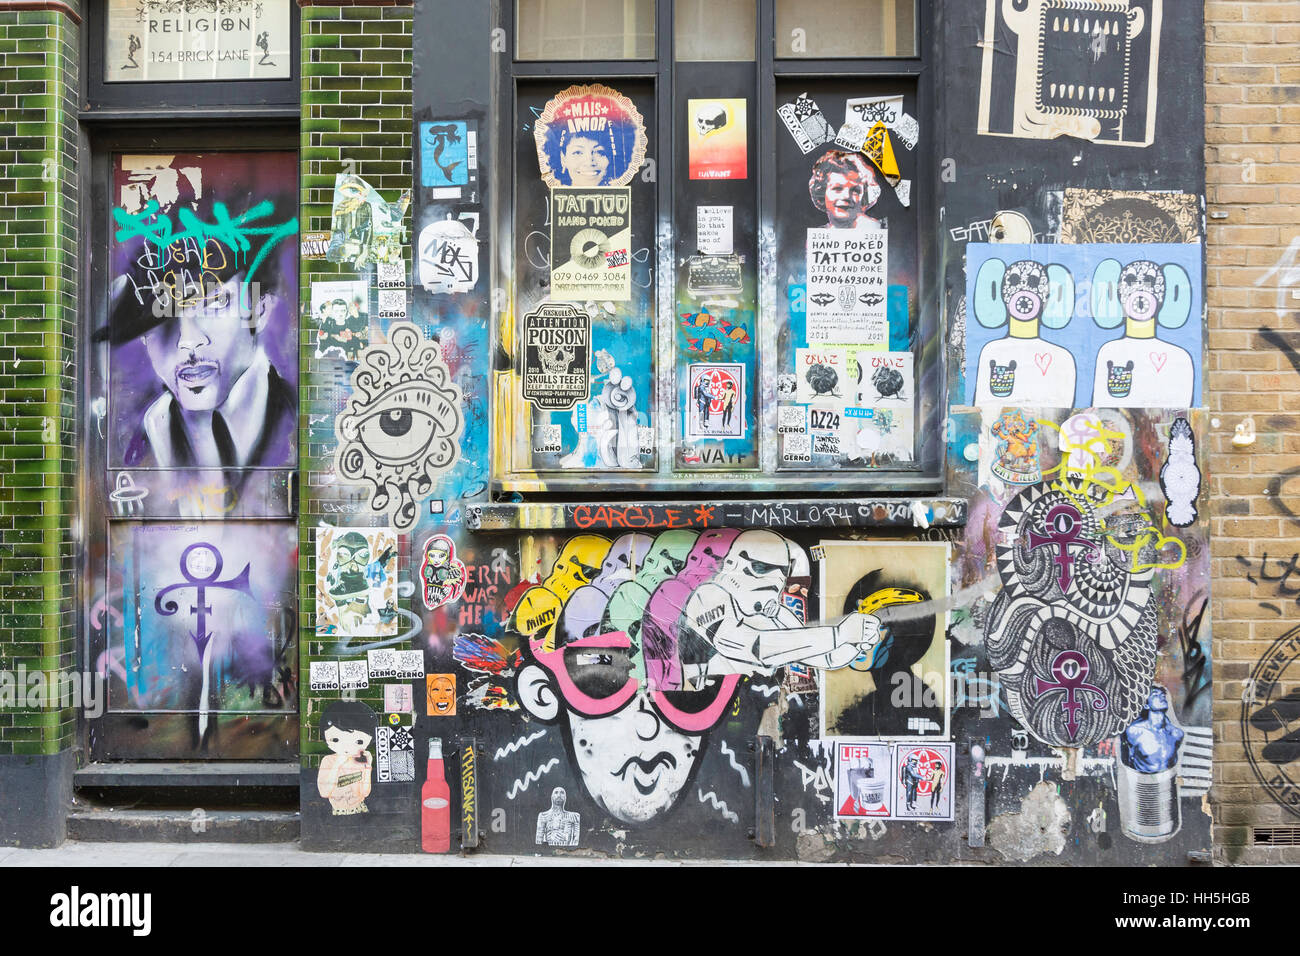 Wall murals in Hanbury Street, Spitalfields, London Borough of Tower Hamlets, Greater London, England, United Kingdom - Stock Image